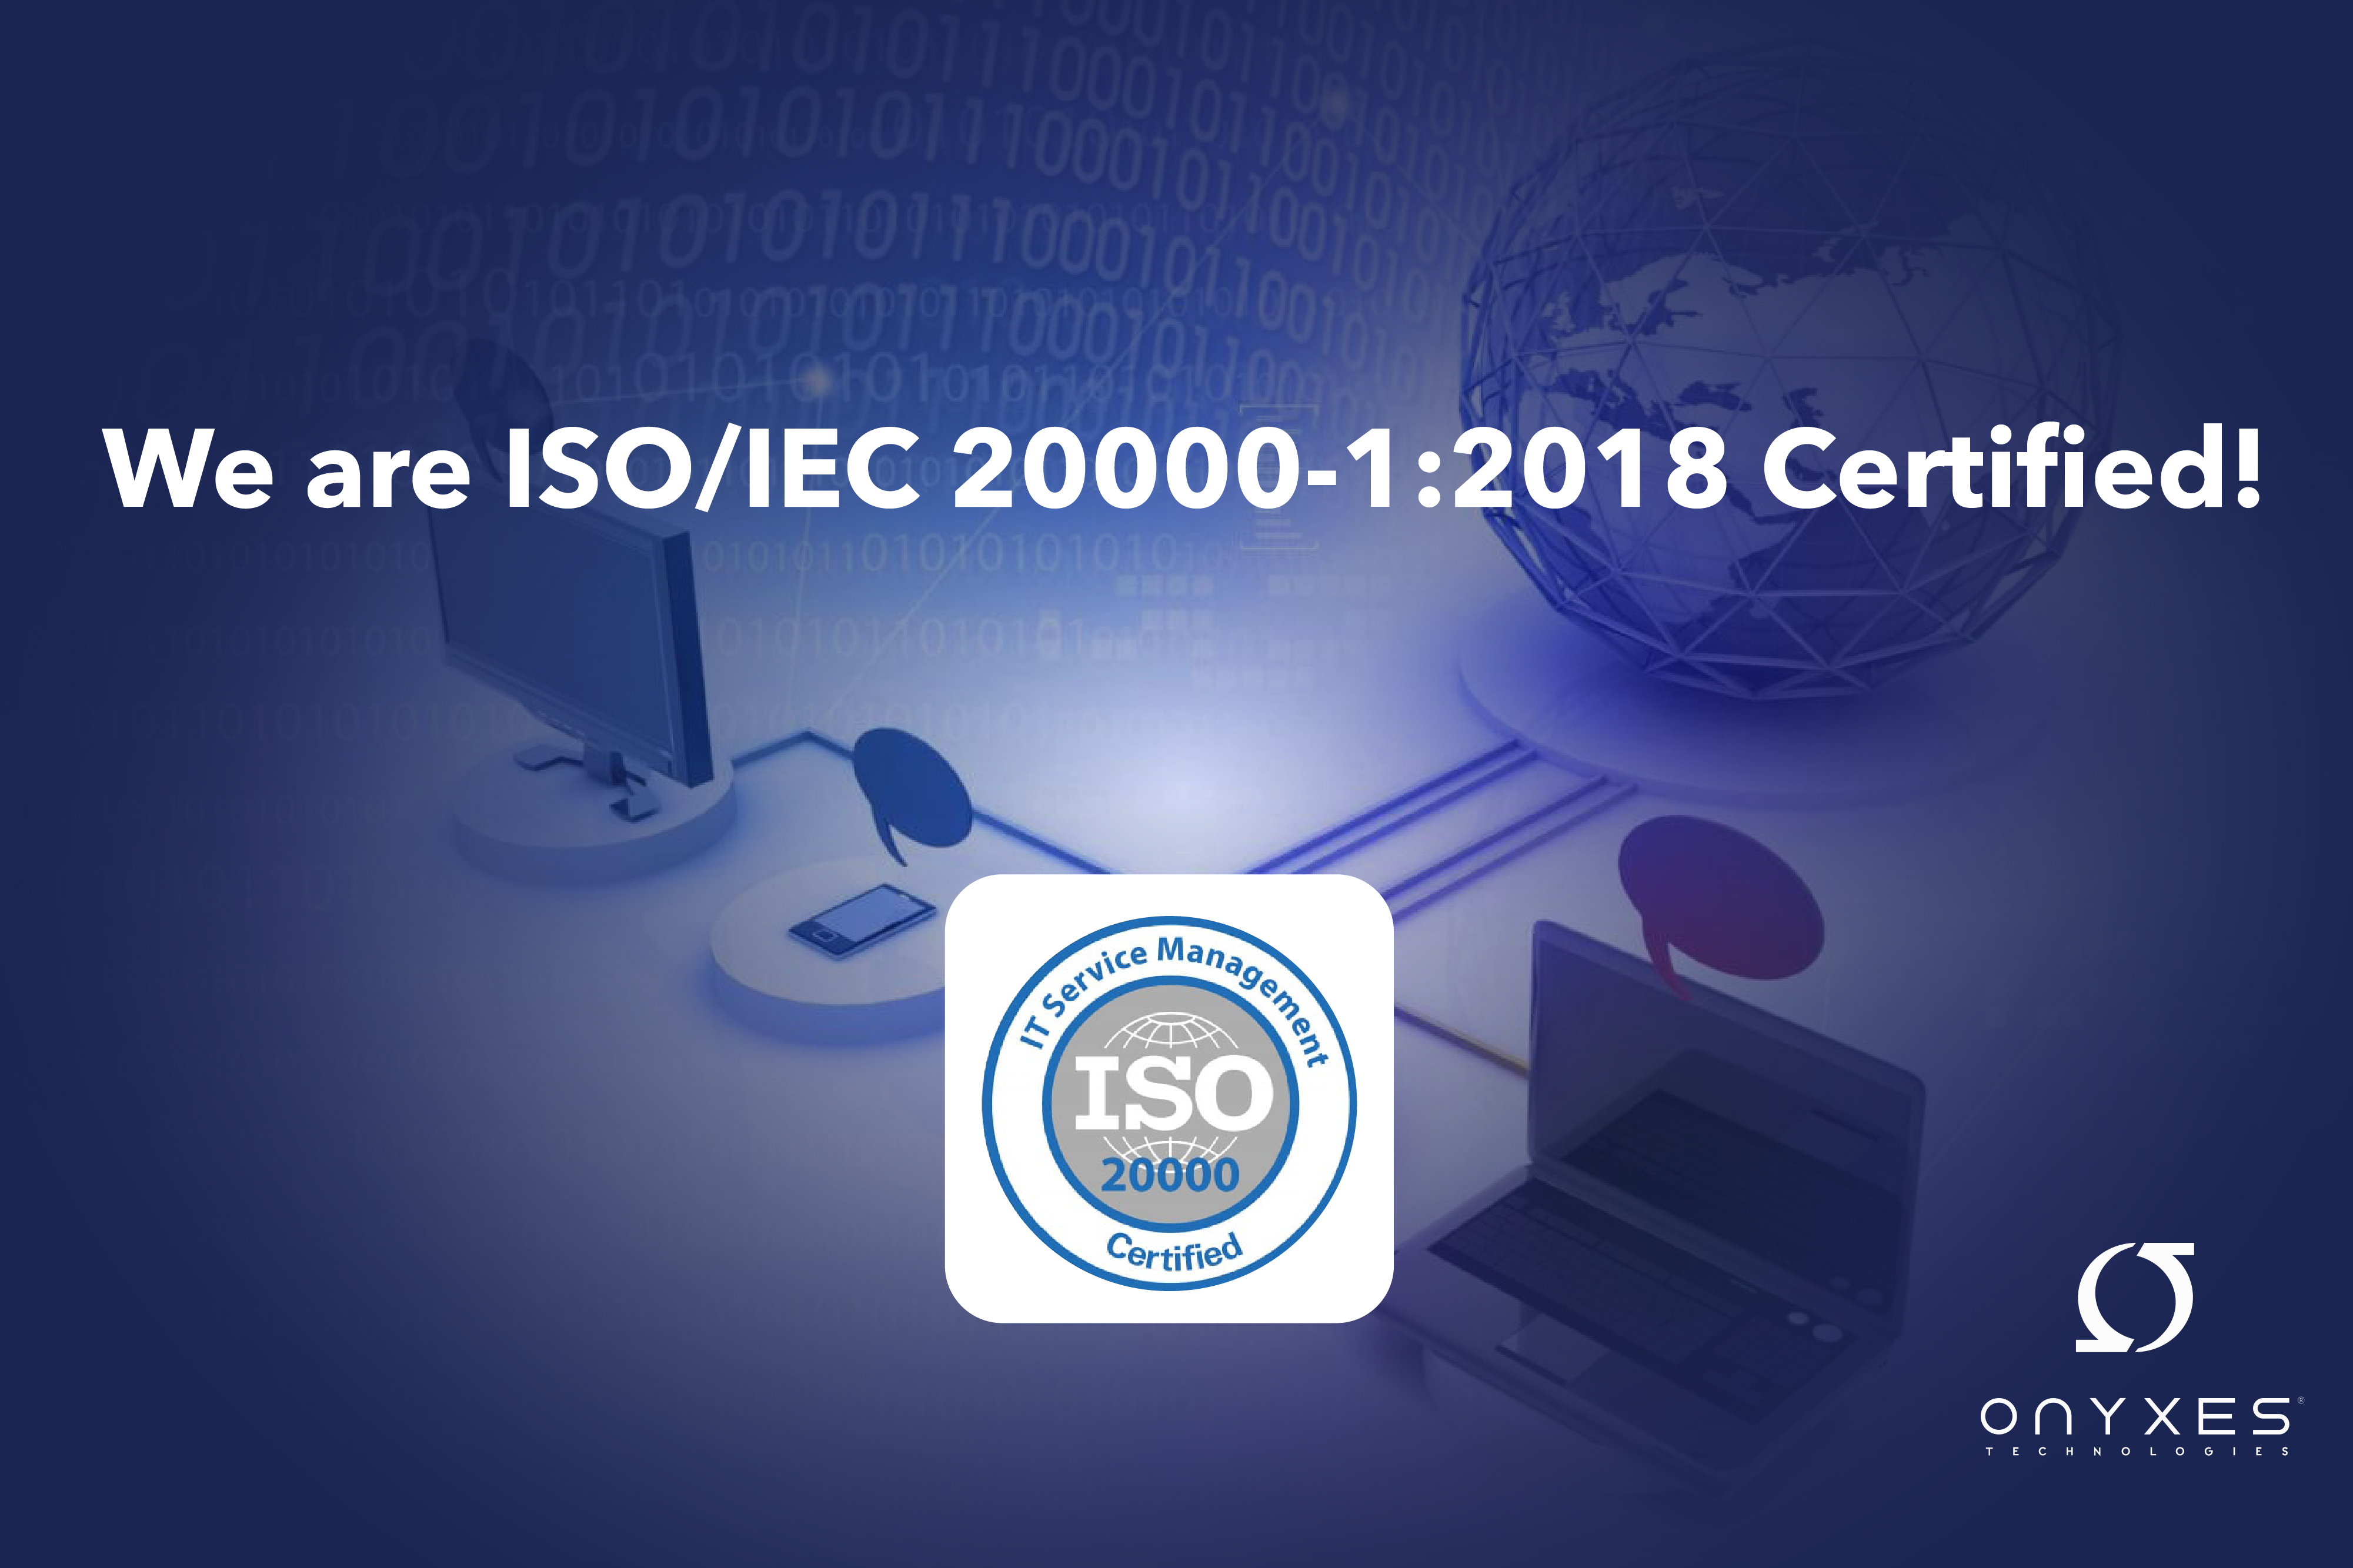 We are ISO/IEC 20000-1 :2018 certified !